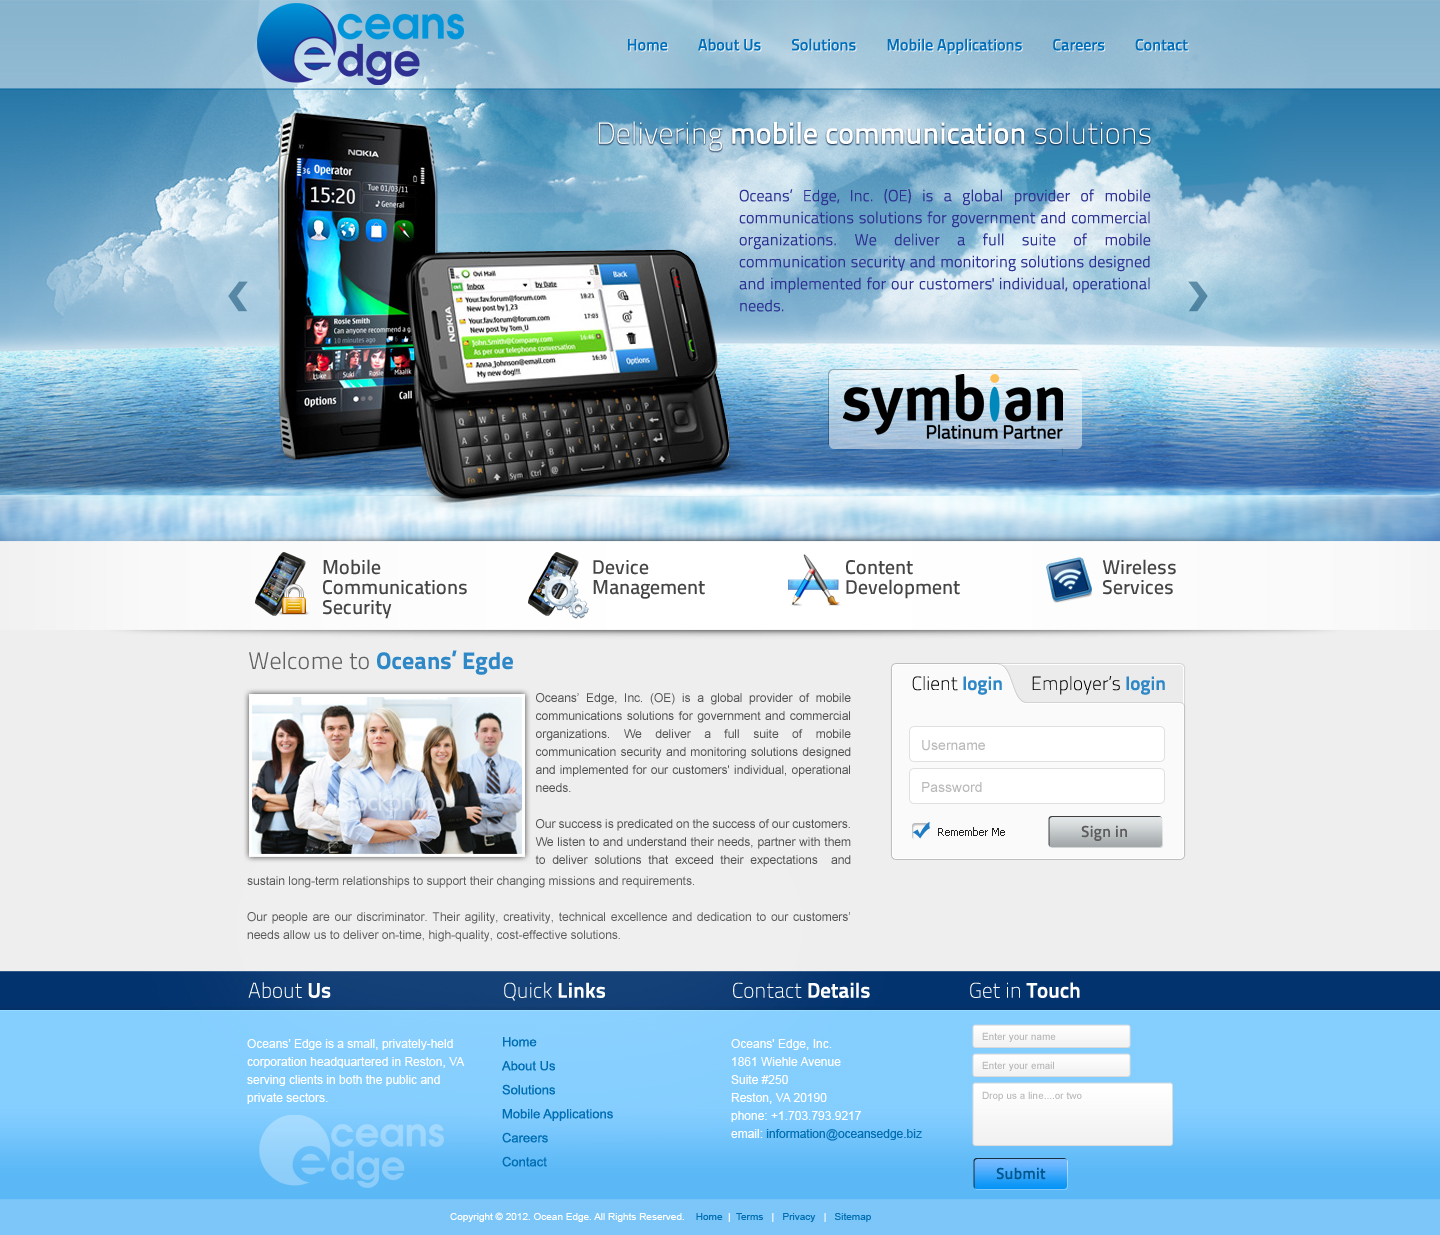 Web Page Design By Vladimir Koncos   Entry No. 78 In The Web Page Design Pictures